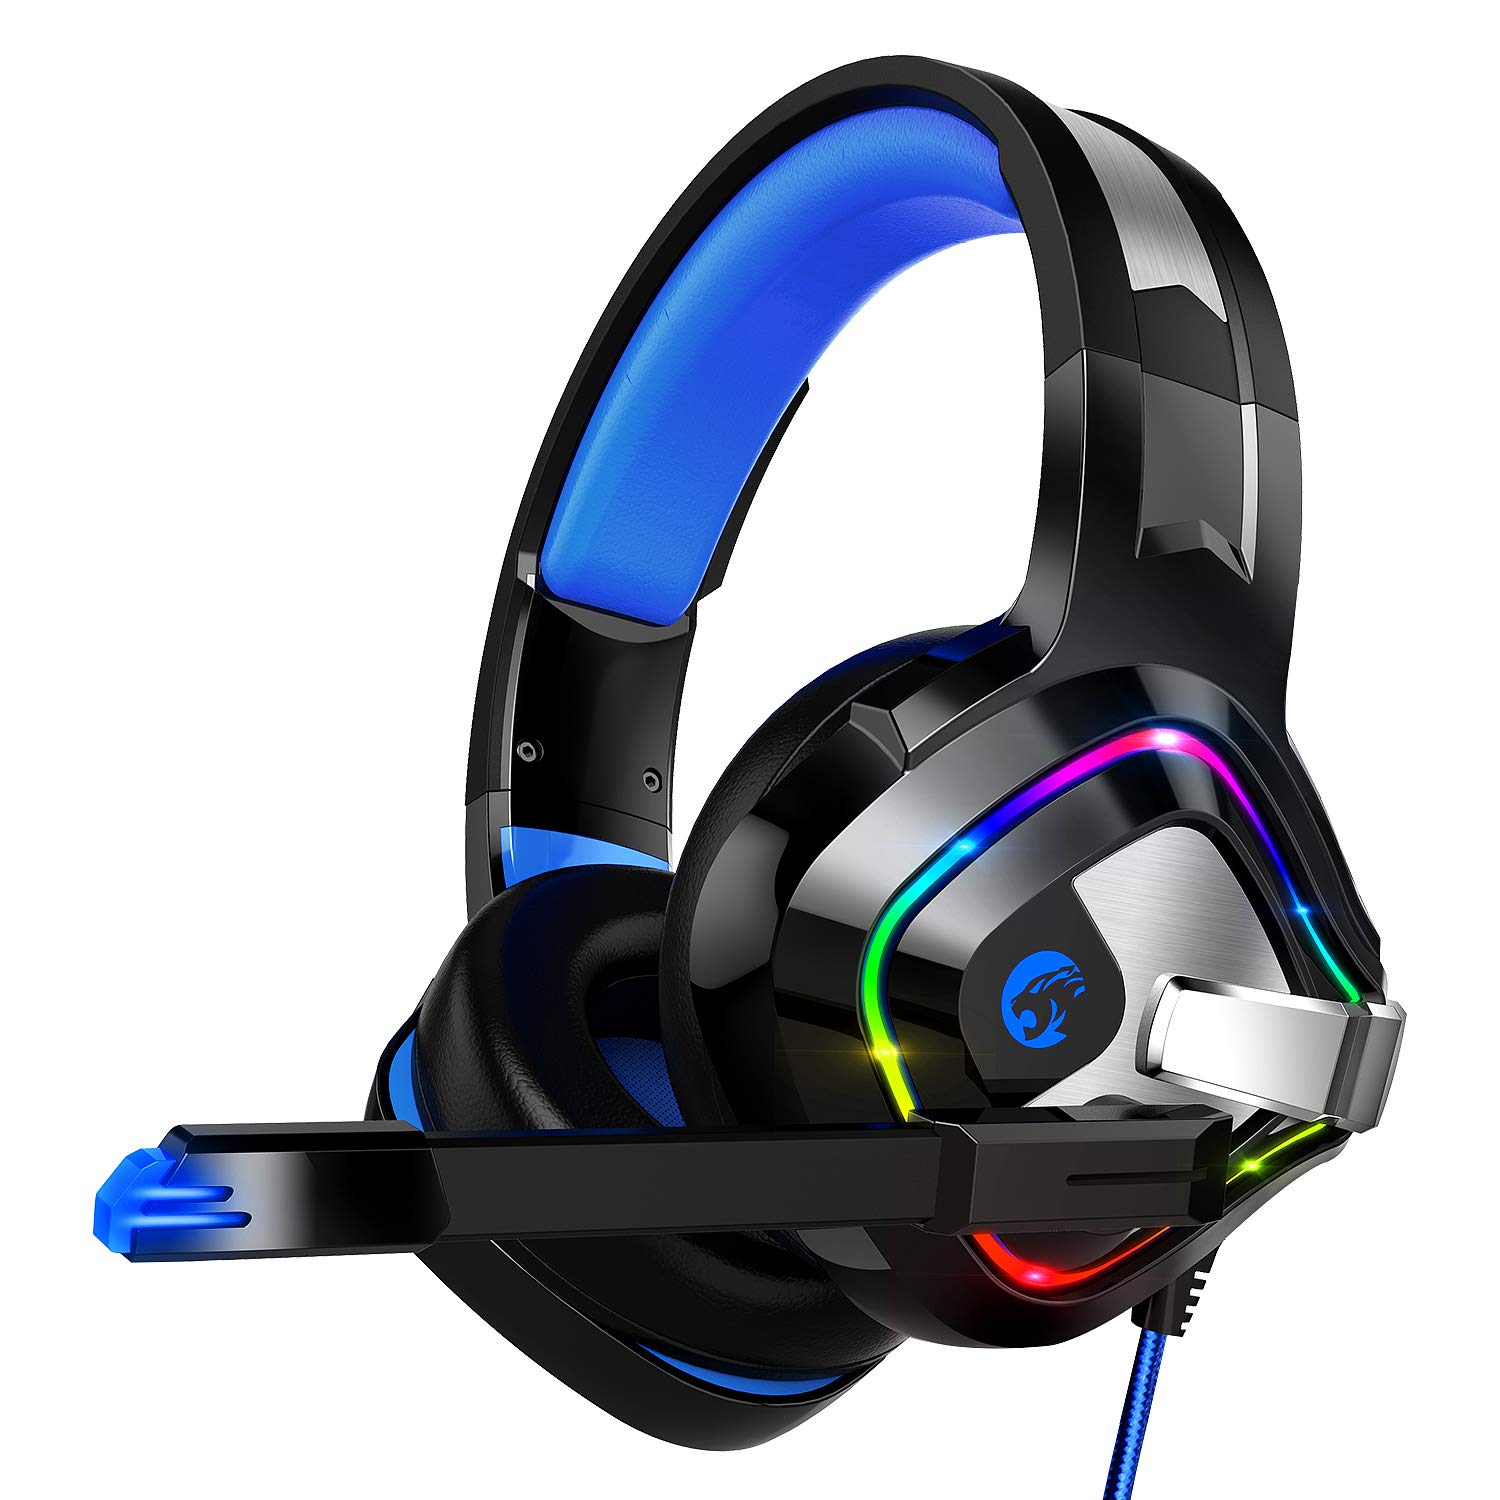 ZIUMIER Gaming Headset PS4 Headset, Xbox One Headset with Noise Canceling Mic and Rgb Light, PC Headset with Stereo Surround Sound, Over-Ear Headphones for PC, PS4, Xbox One, Laptop by ZIUMIER